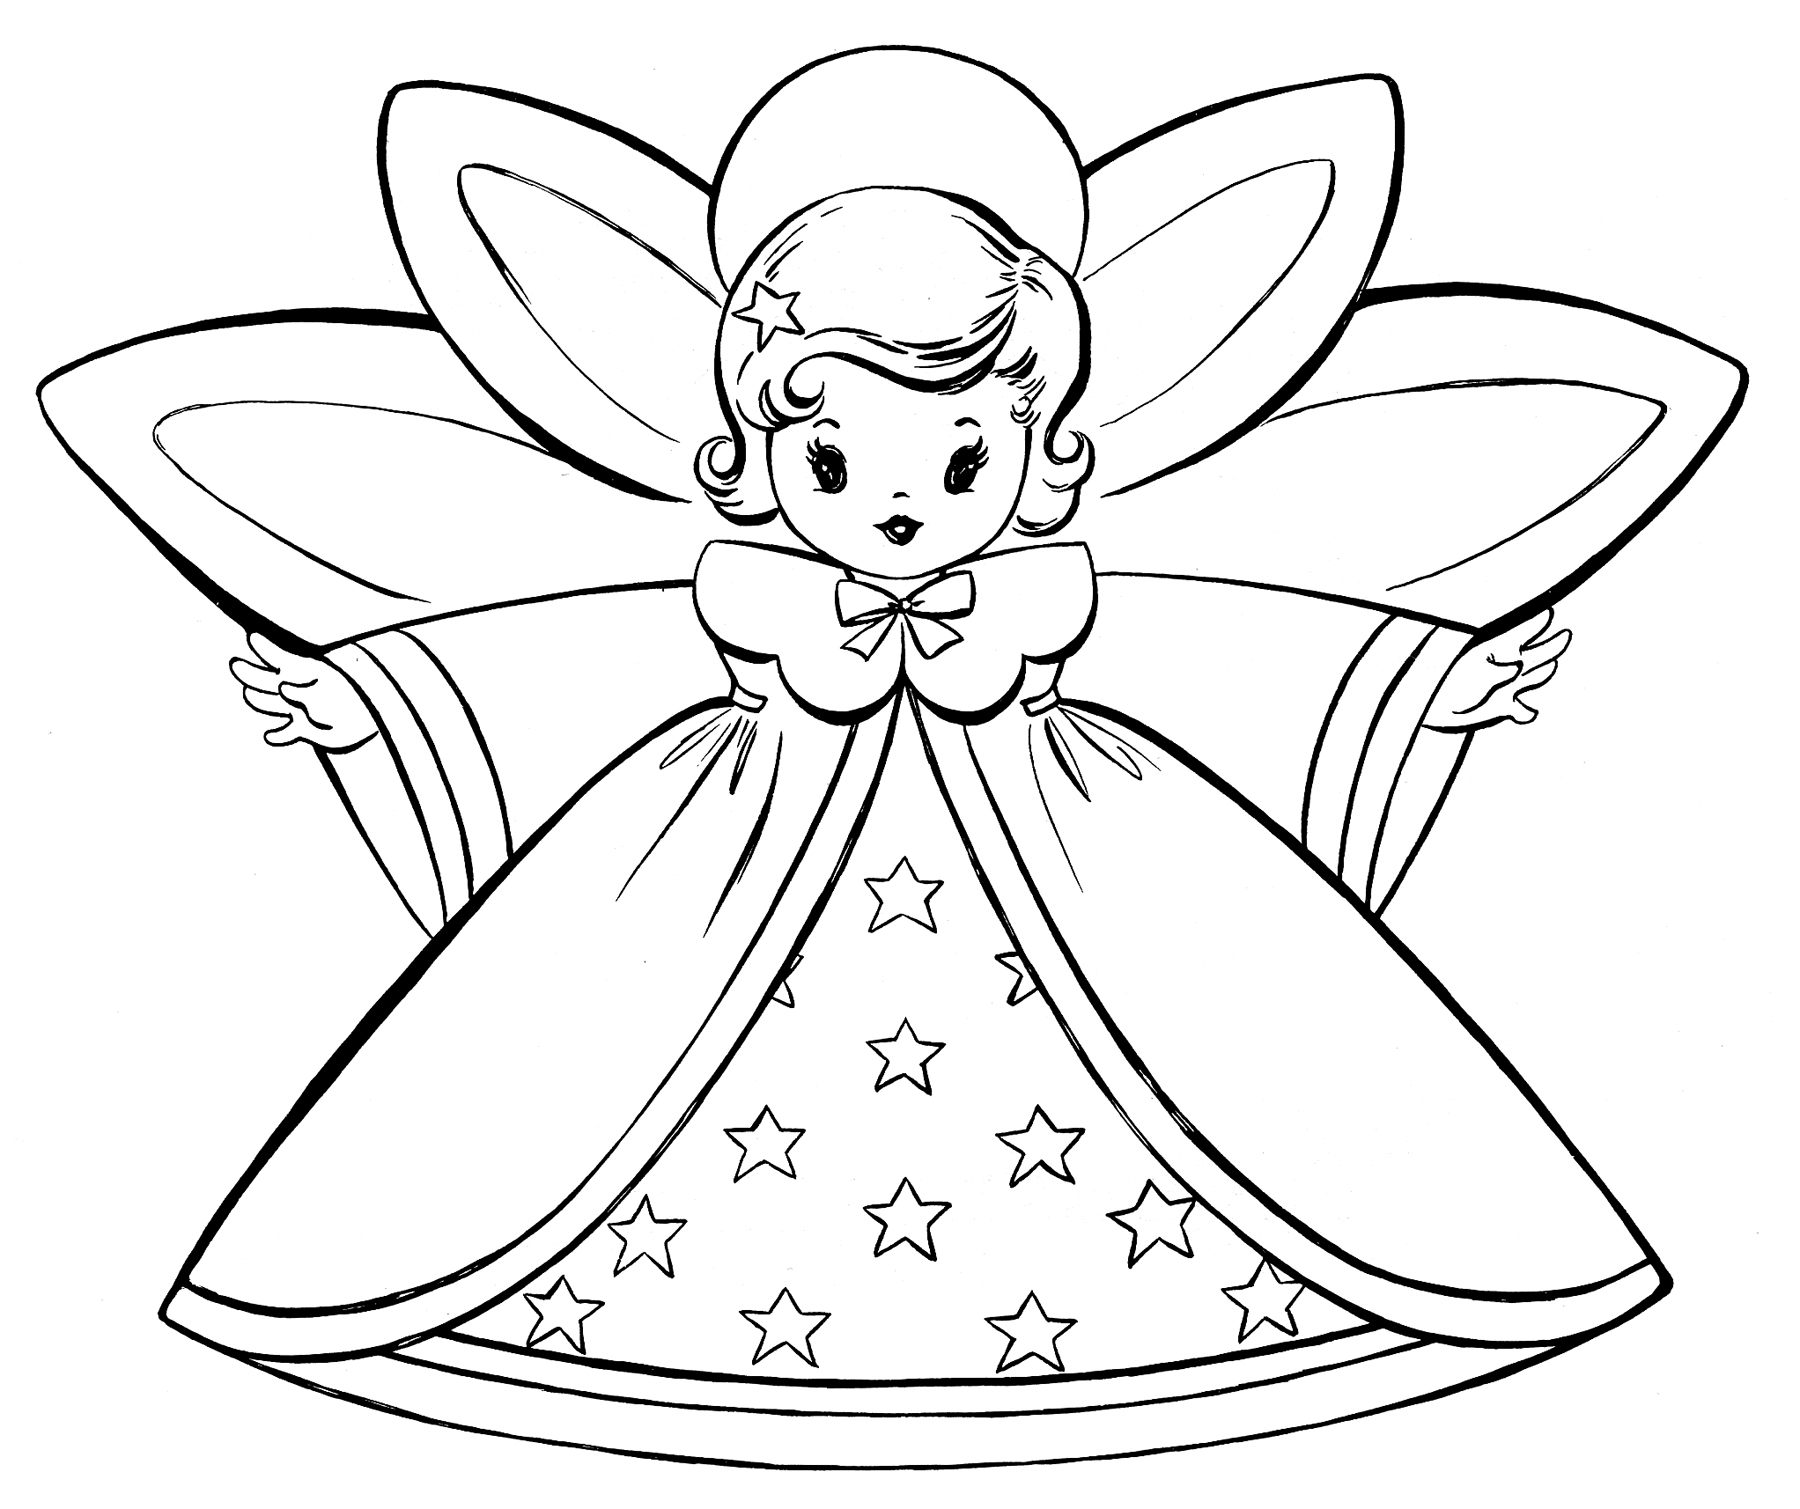 coloring angel kids free angel coloring pages letscoloringpagescom two coloring angel kids